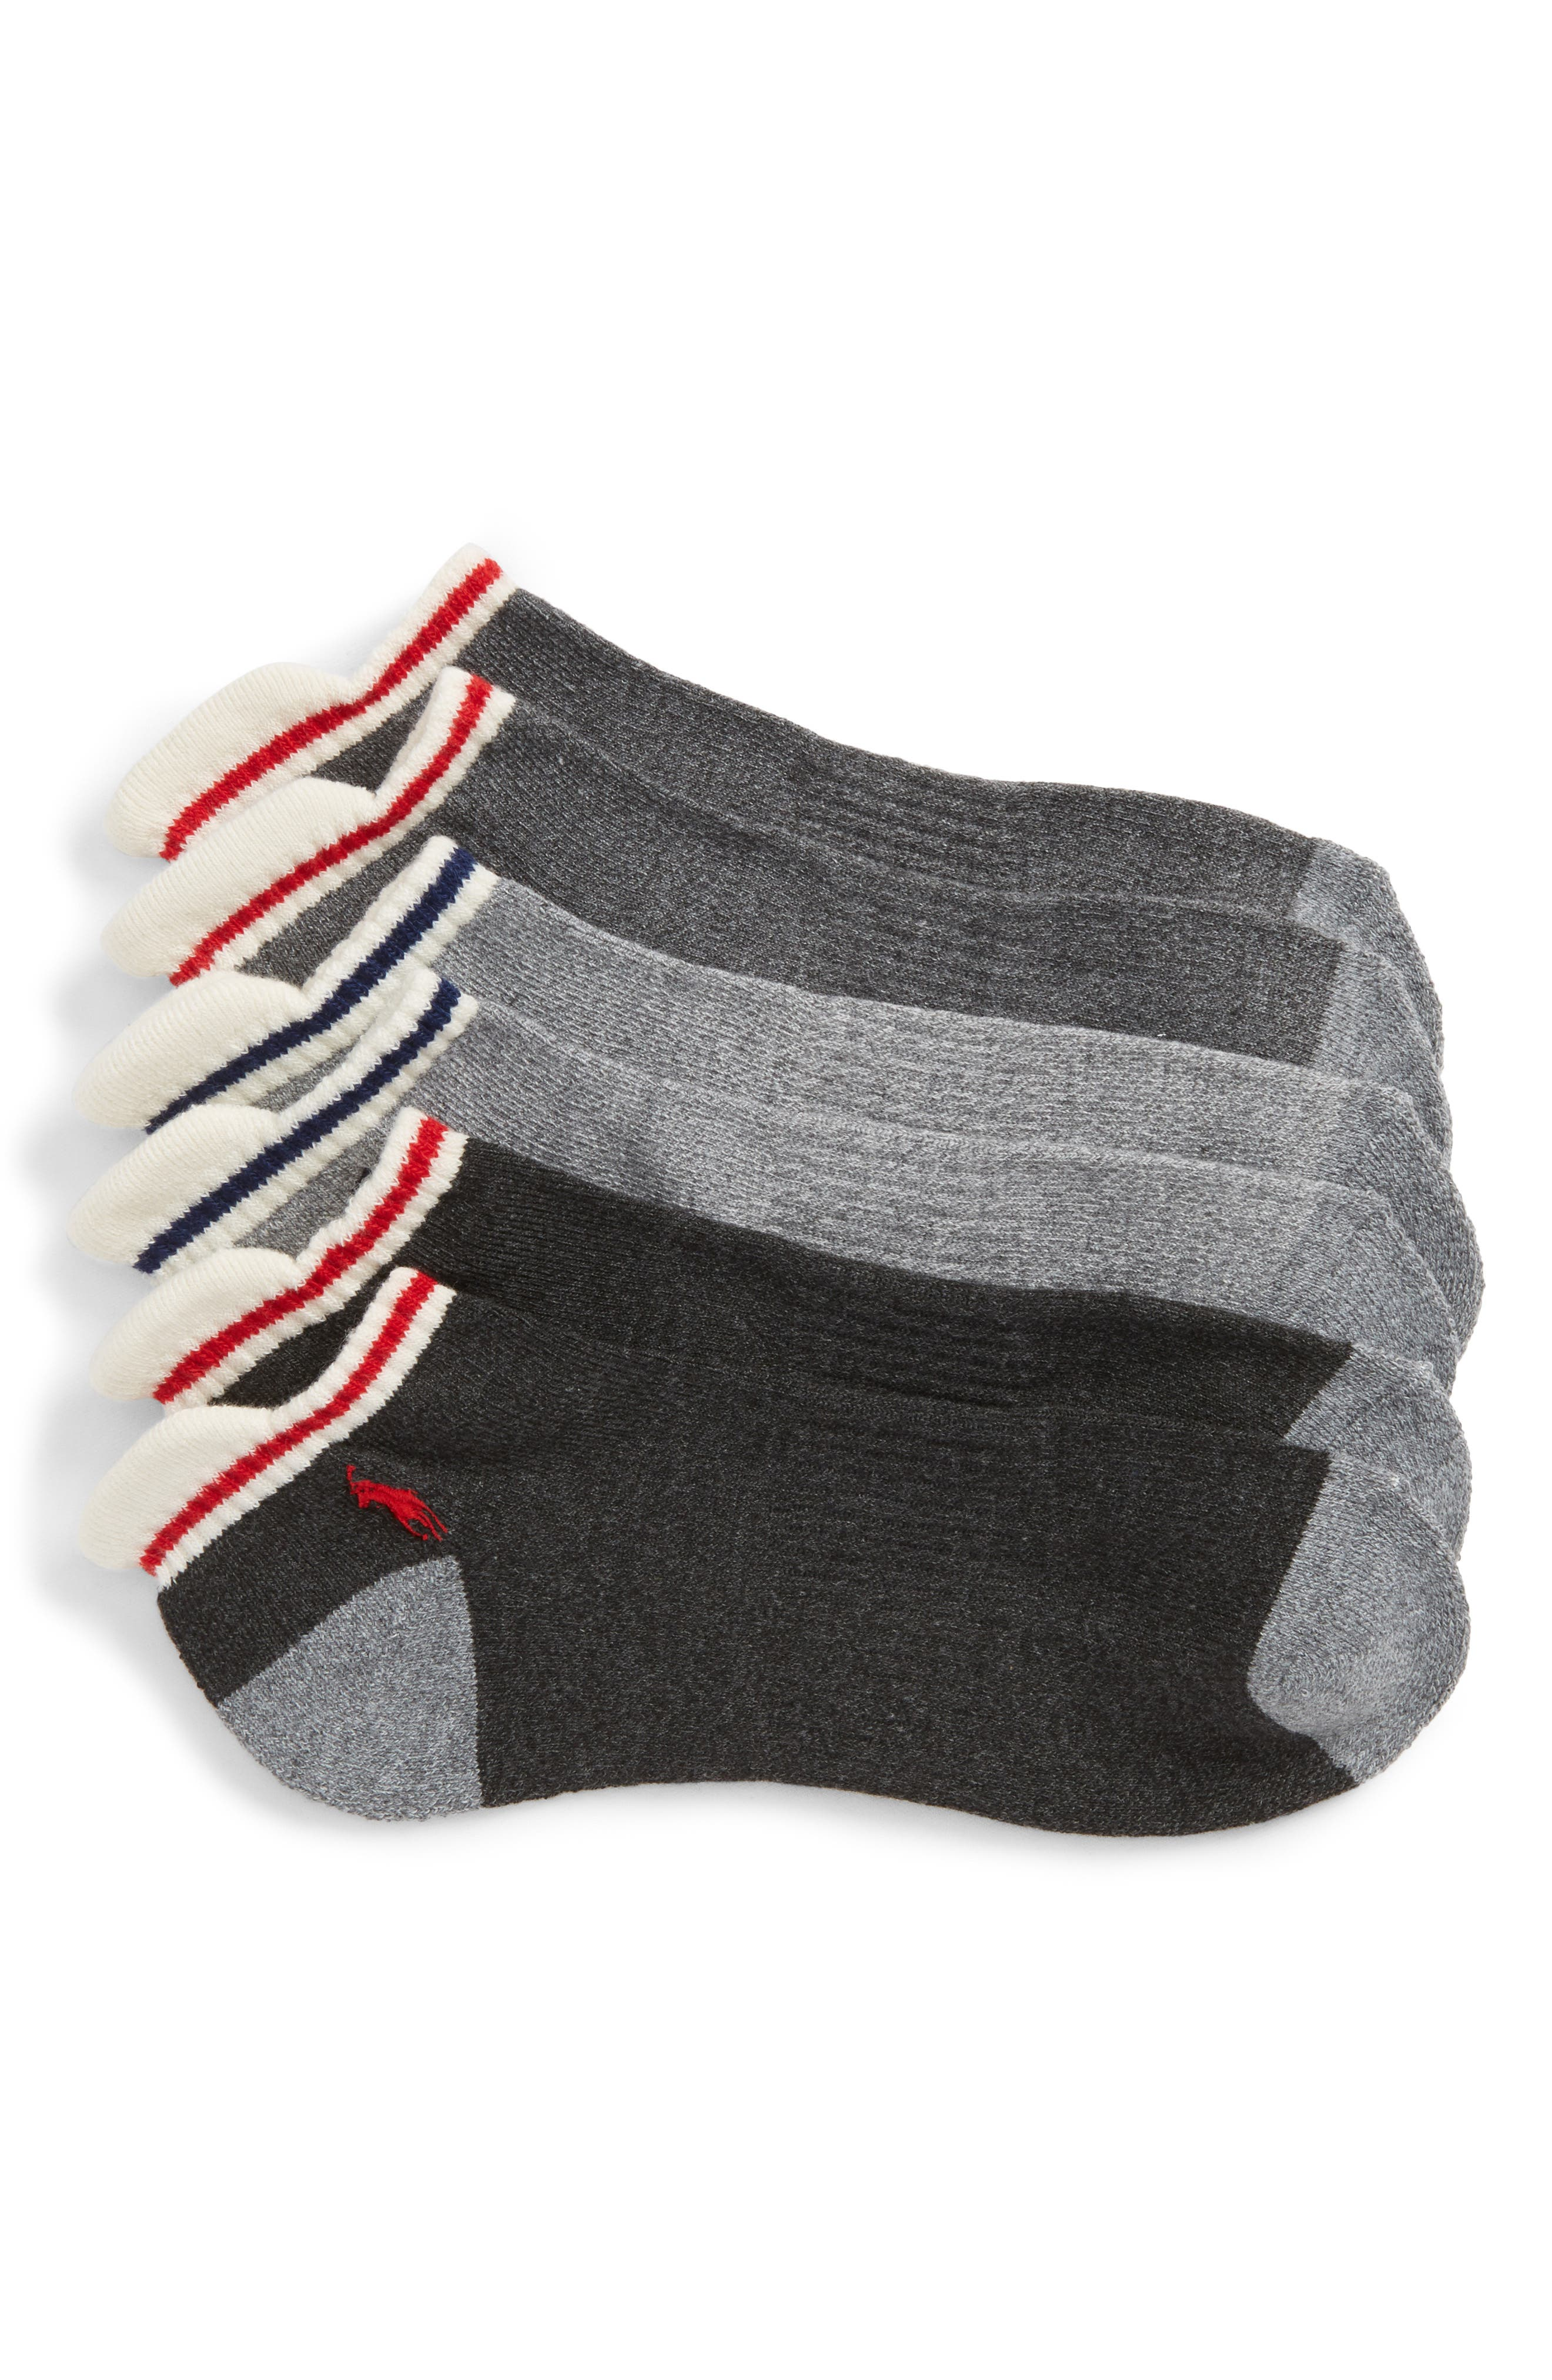 3-Pack Low Cut Socks,                             Main thumbnail 1, color,                             Grey Heather/ Assorted